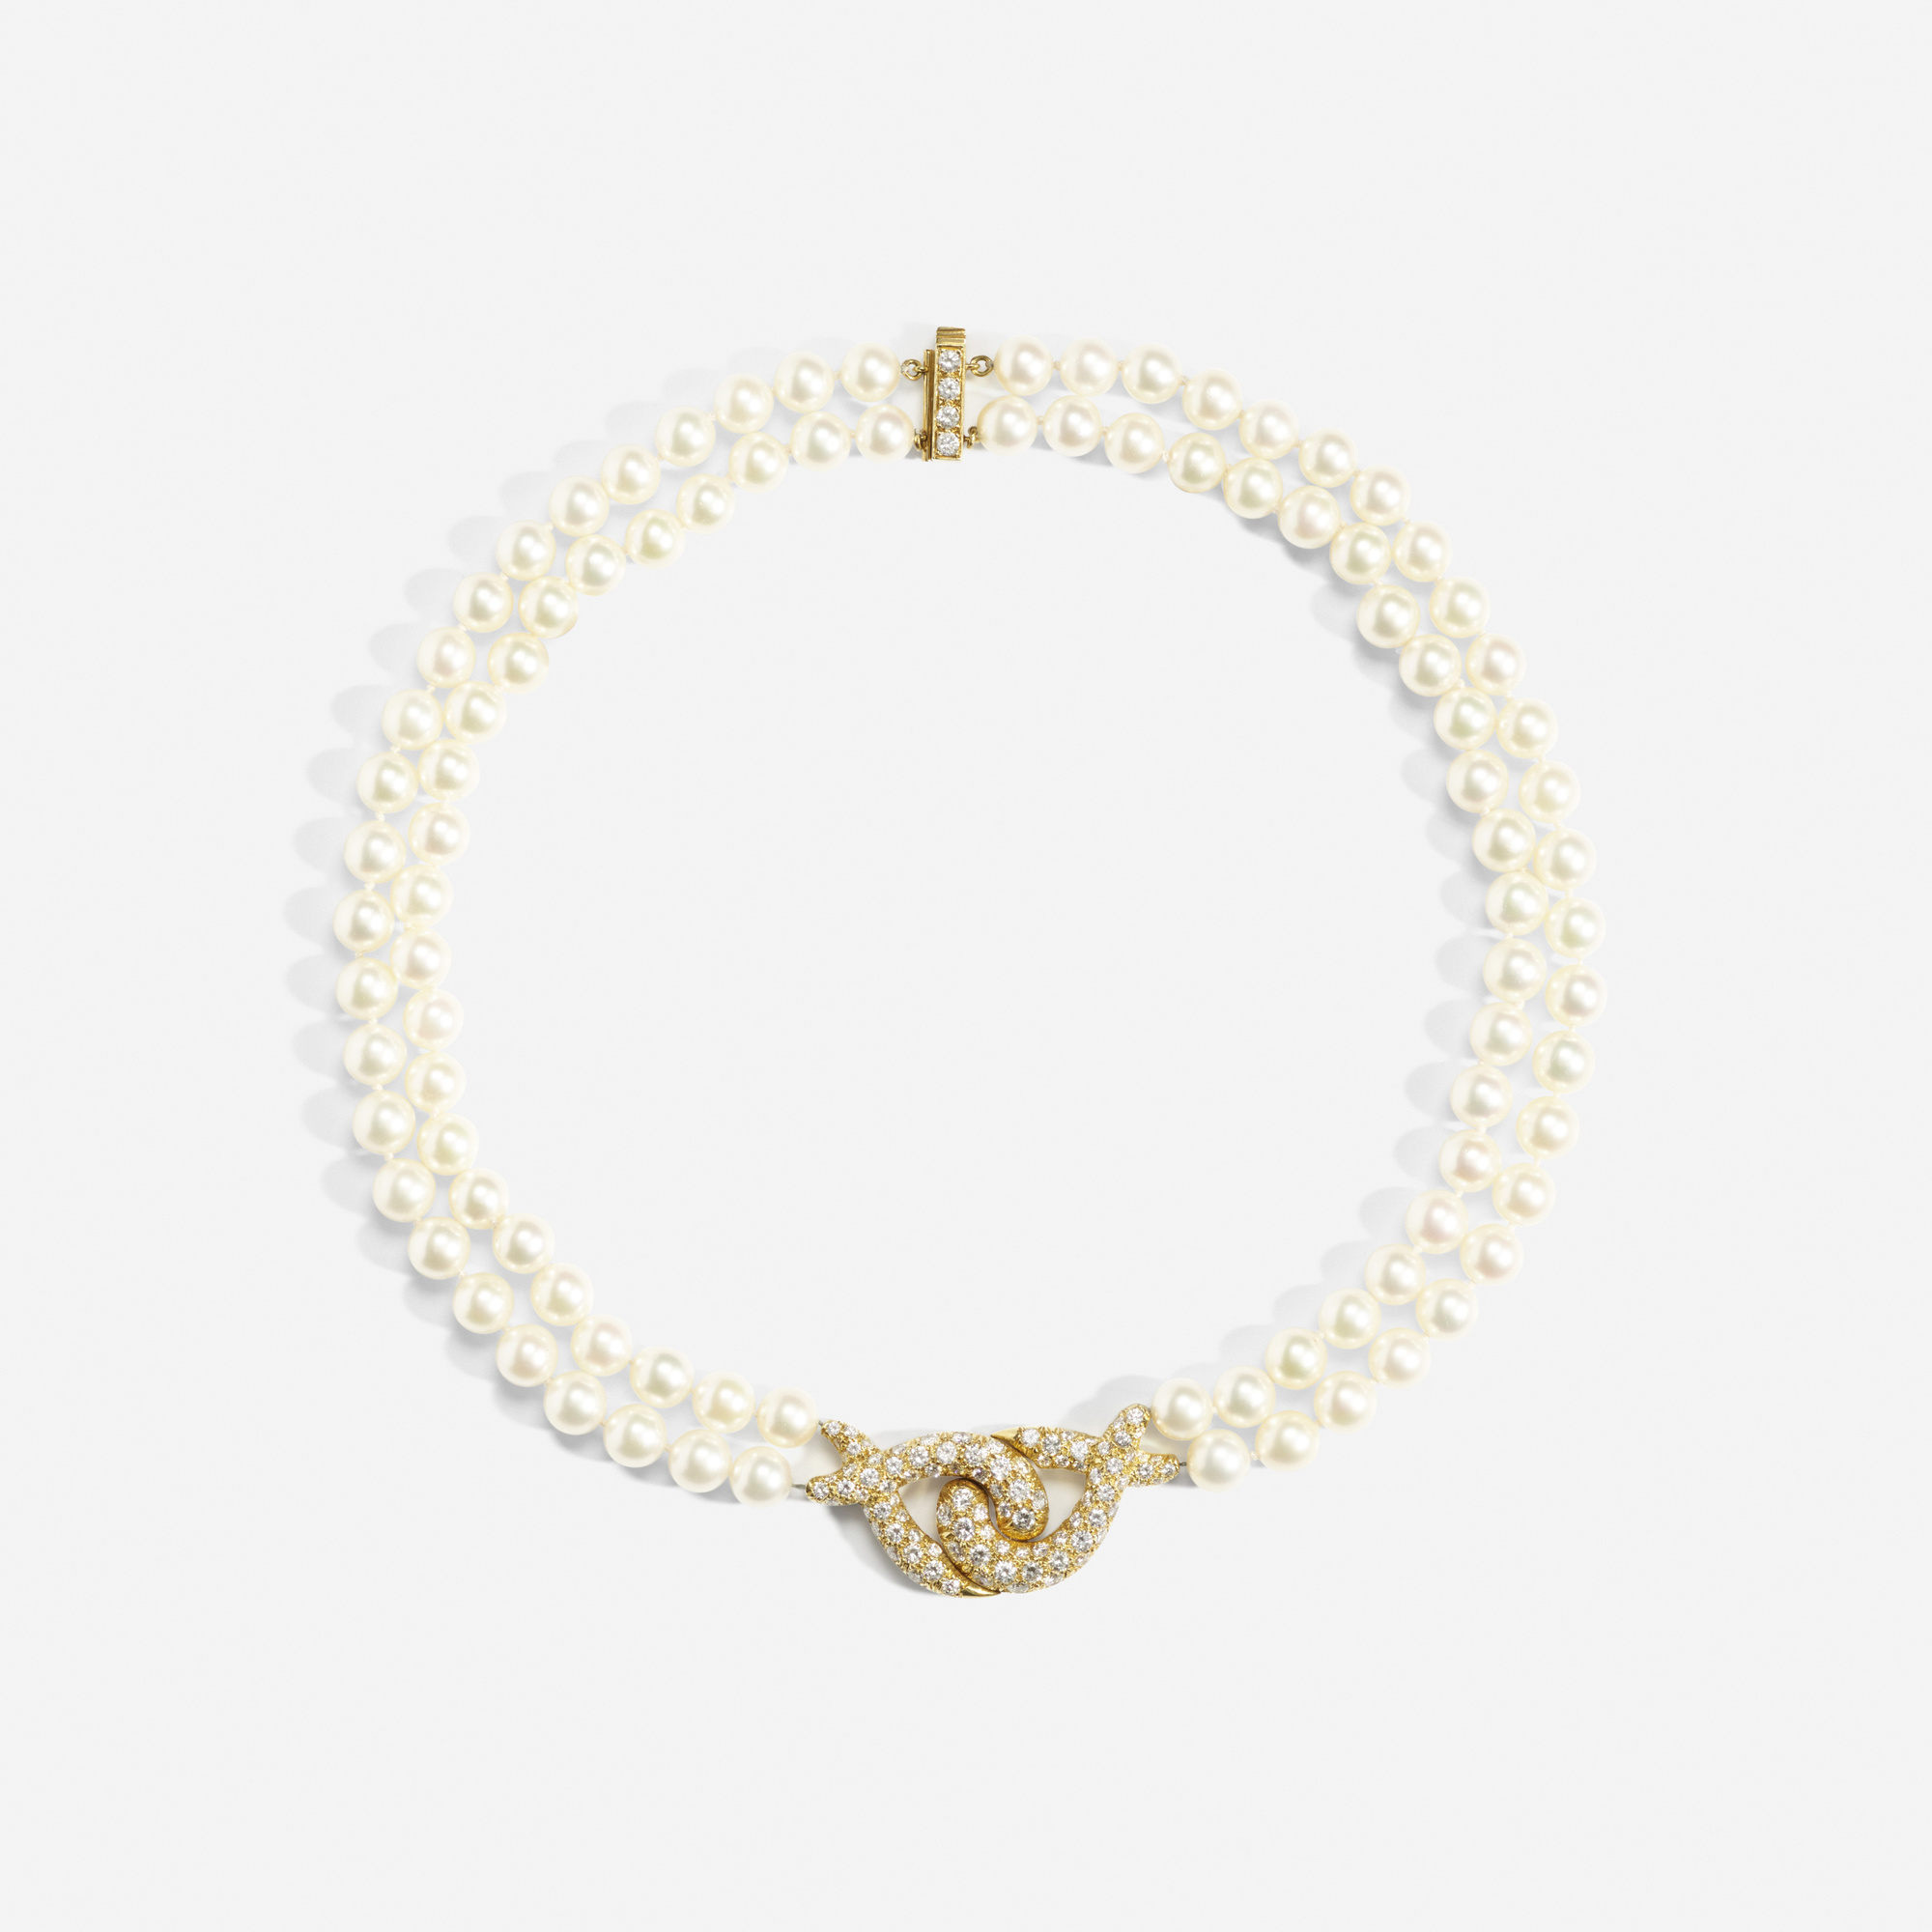 136: Van Cleef & Arpels / A gold, diamond and pearl necklace (1 of 1)